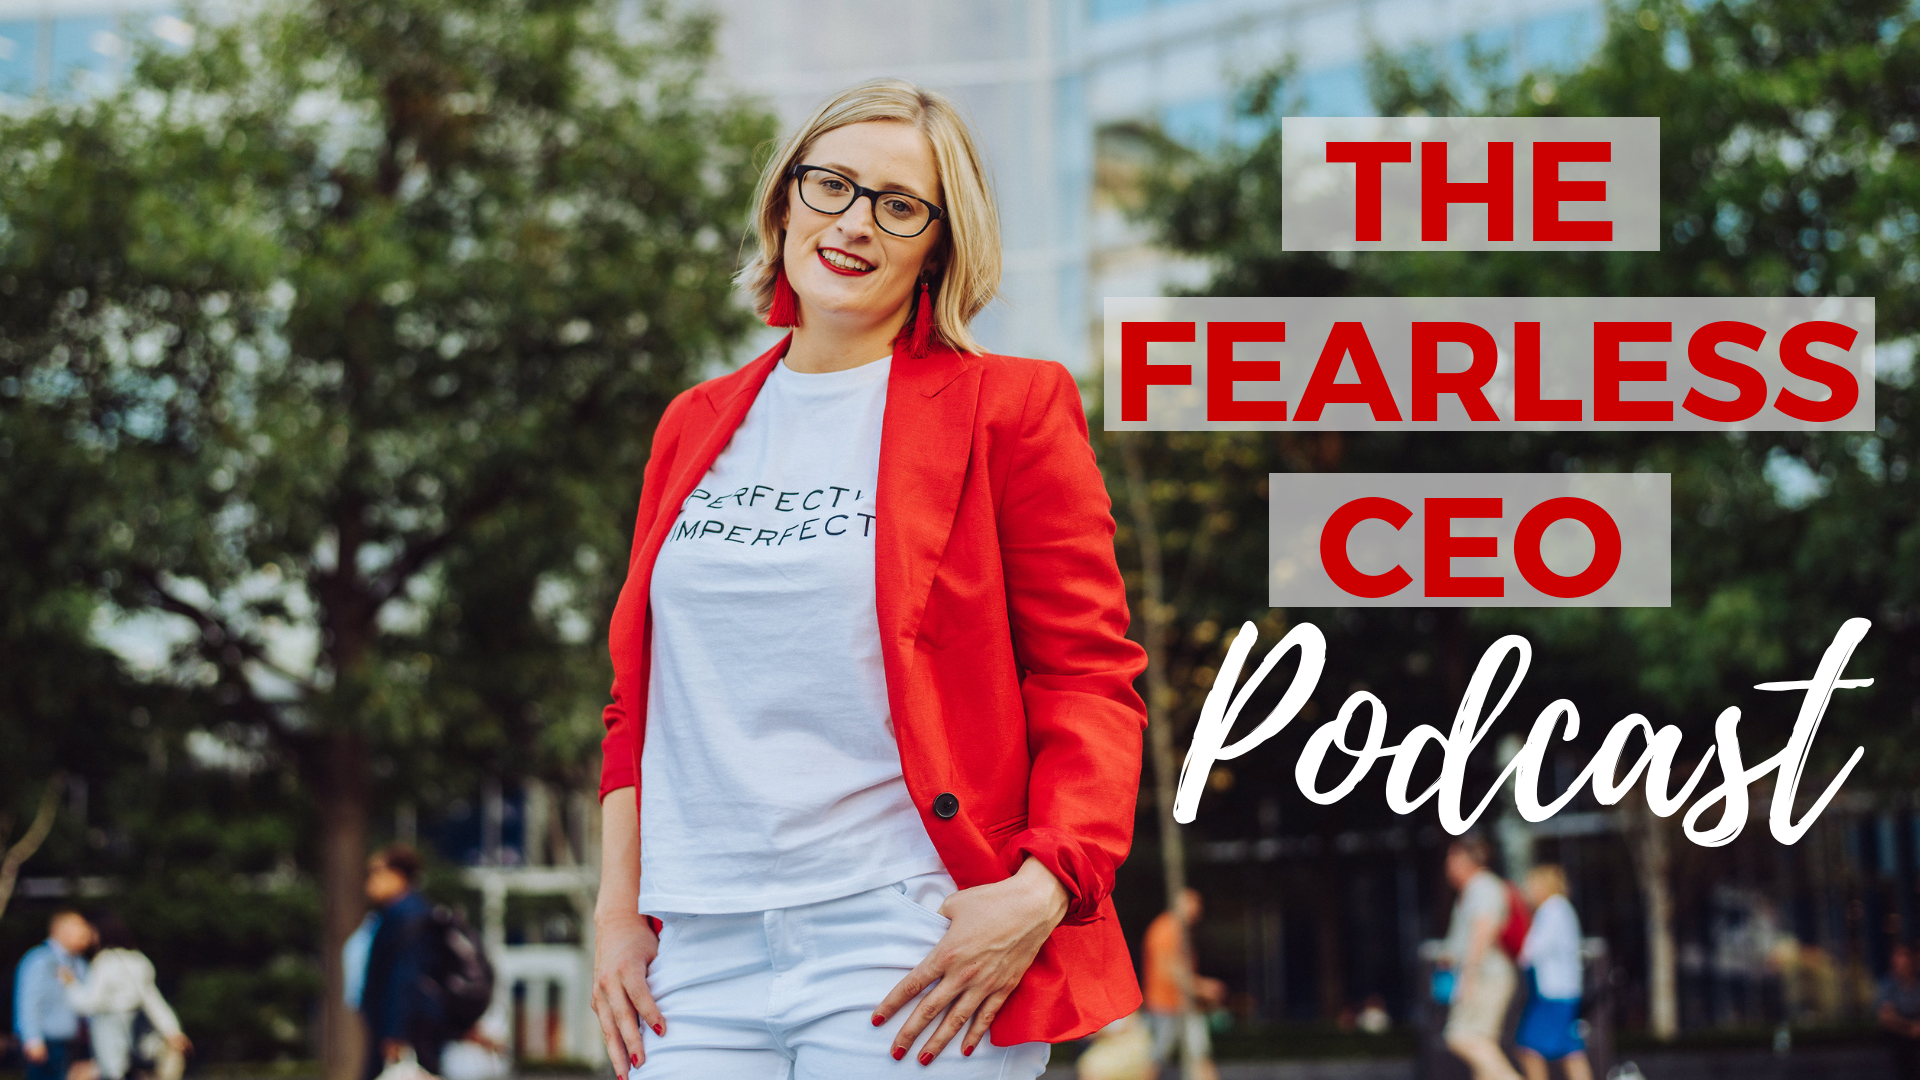 The Fearless CEO Podcast